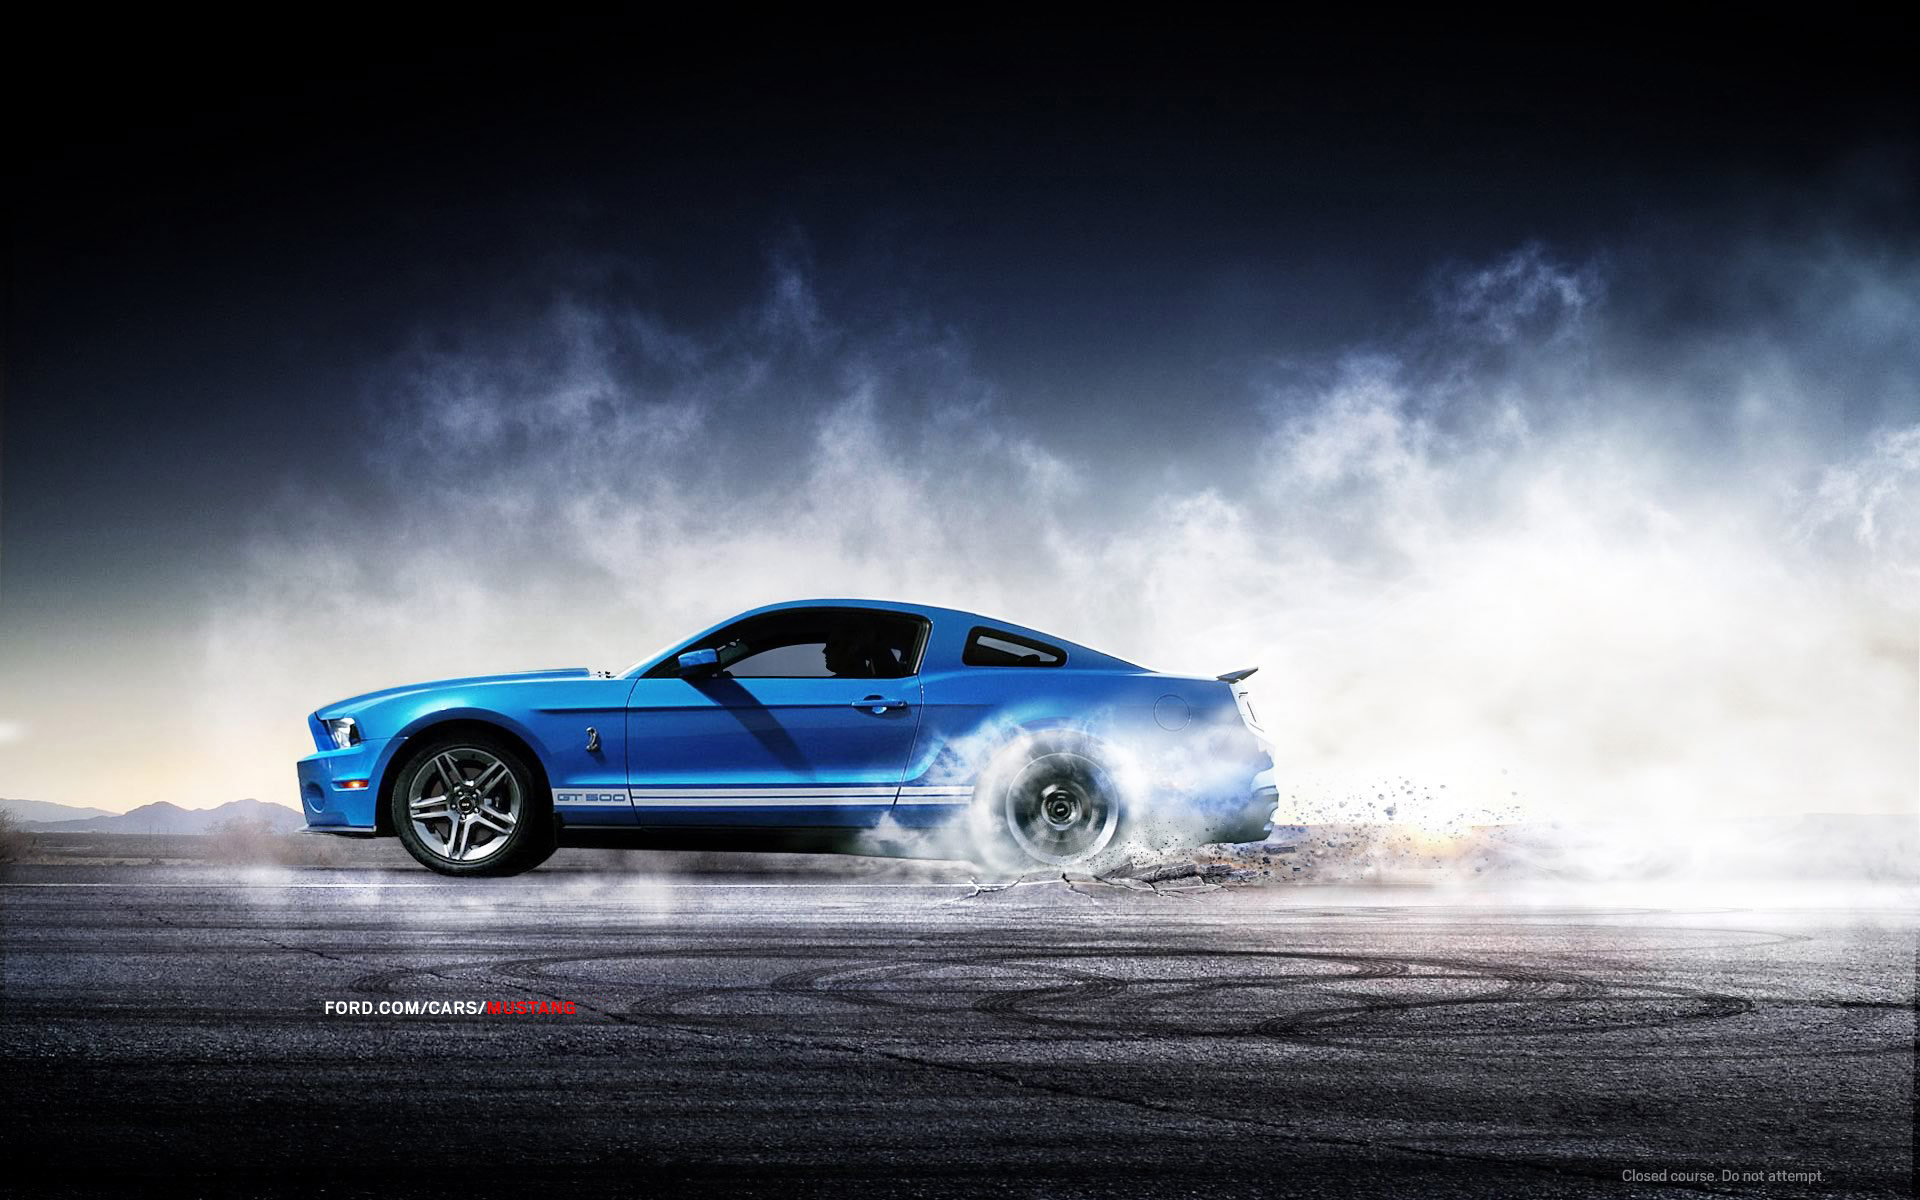 Ford Mustang Shelby Wallpaper HD 1217 Wallpaper Cool Walldiskpaper 1920x1200